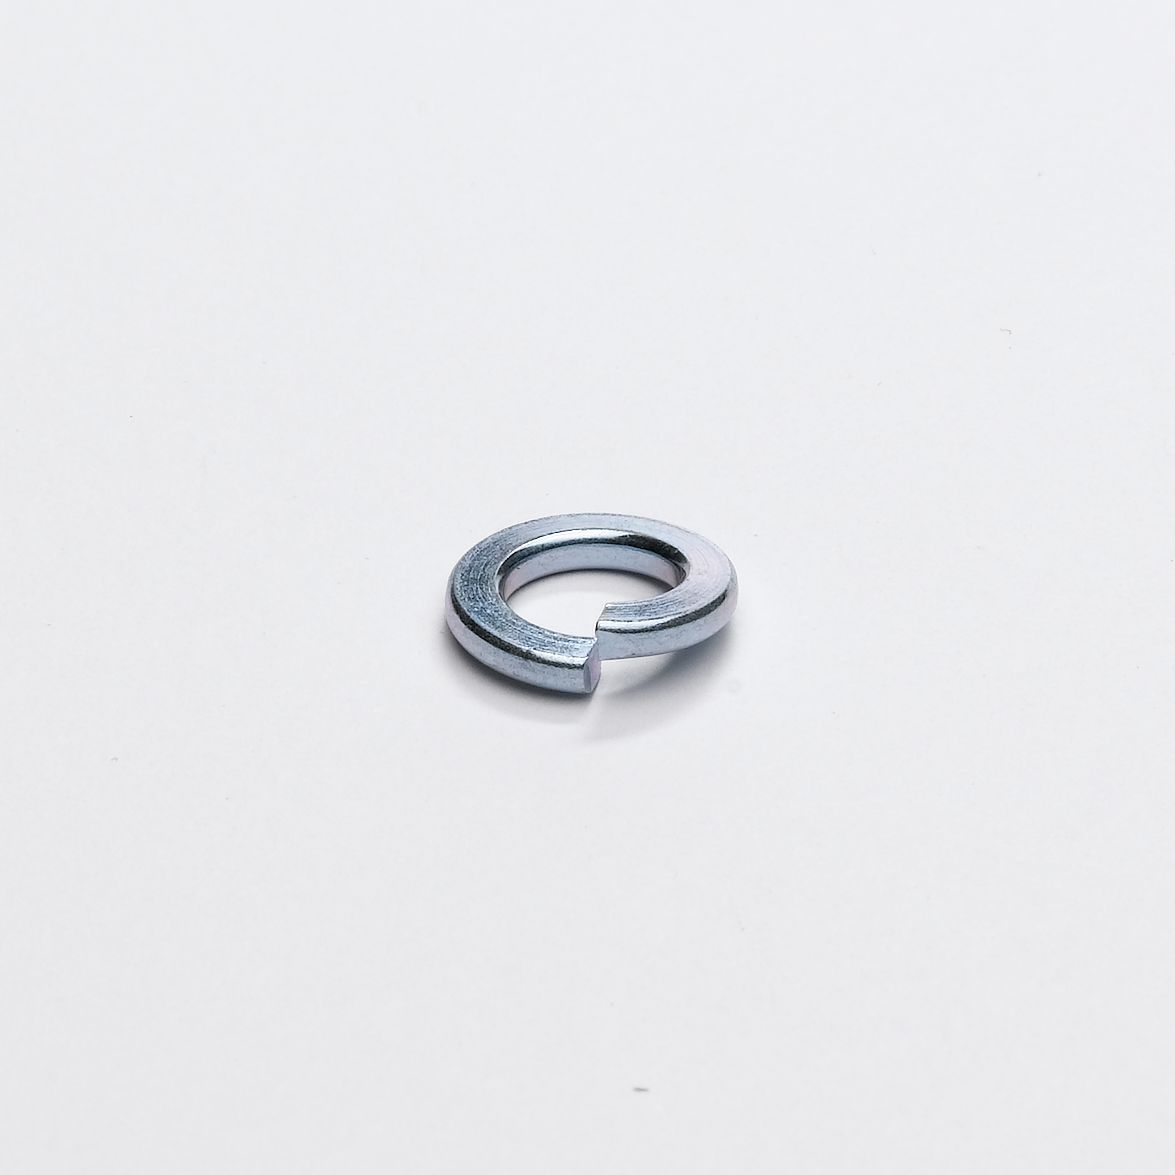 STARPACK ASSORTED SPRING WASHERS QTY:50